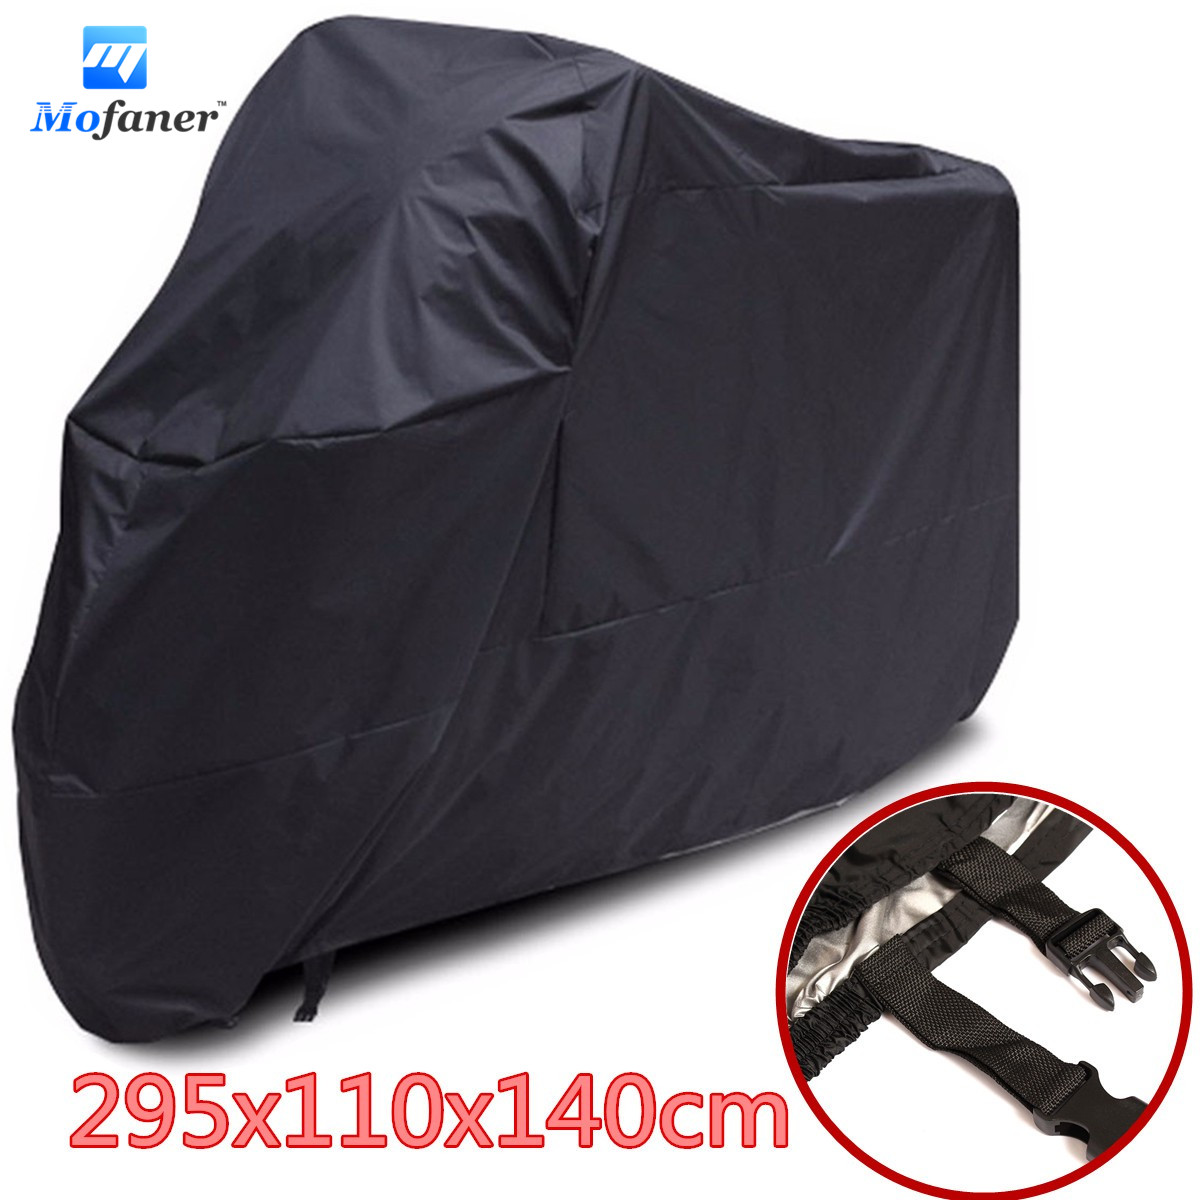 XXXL Motorcycle Cover Universal Black Waterproof UV Protection 295x110x140cm Motocycle Cover For Harley-Davidson Street